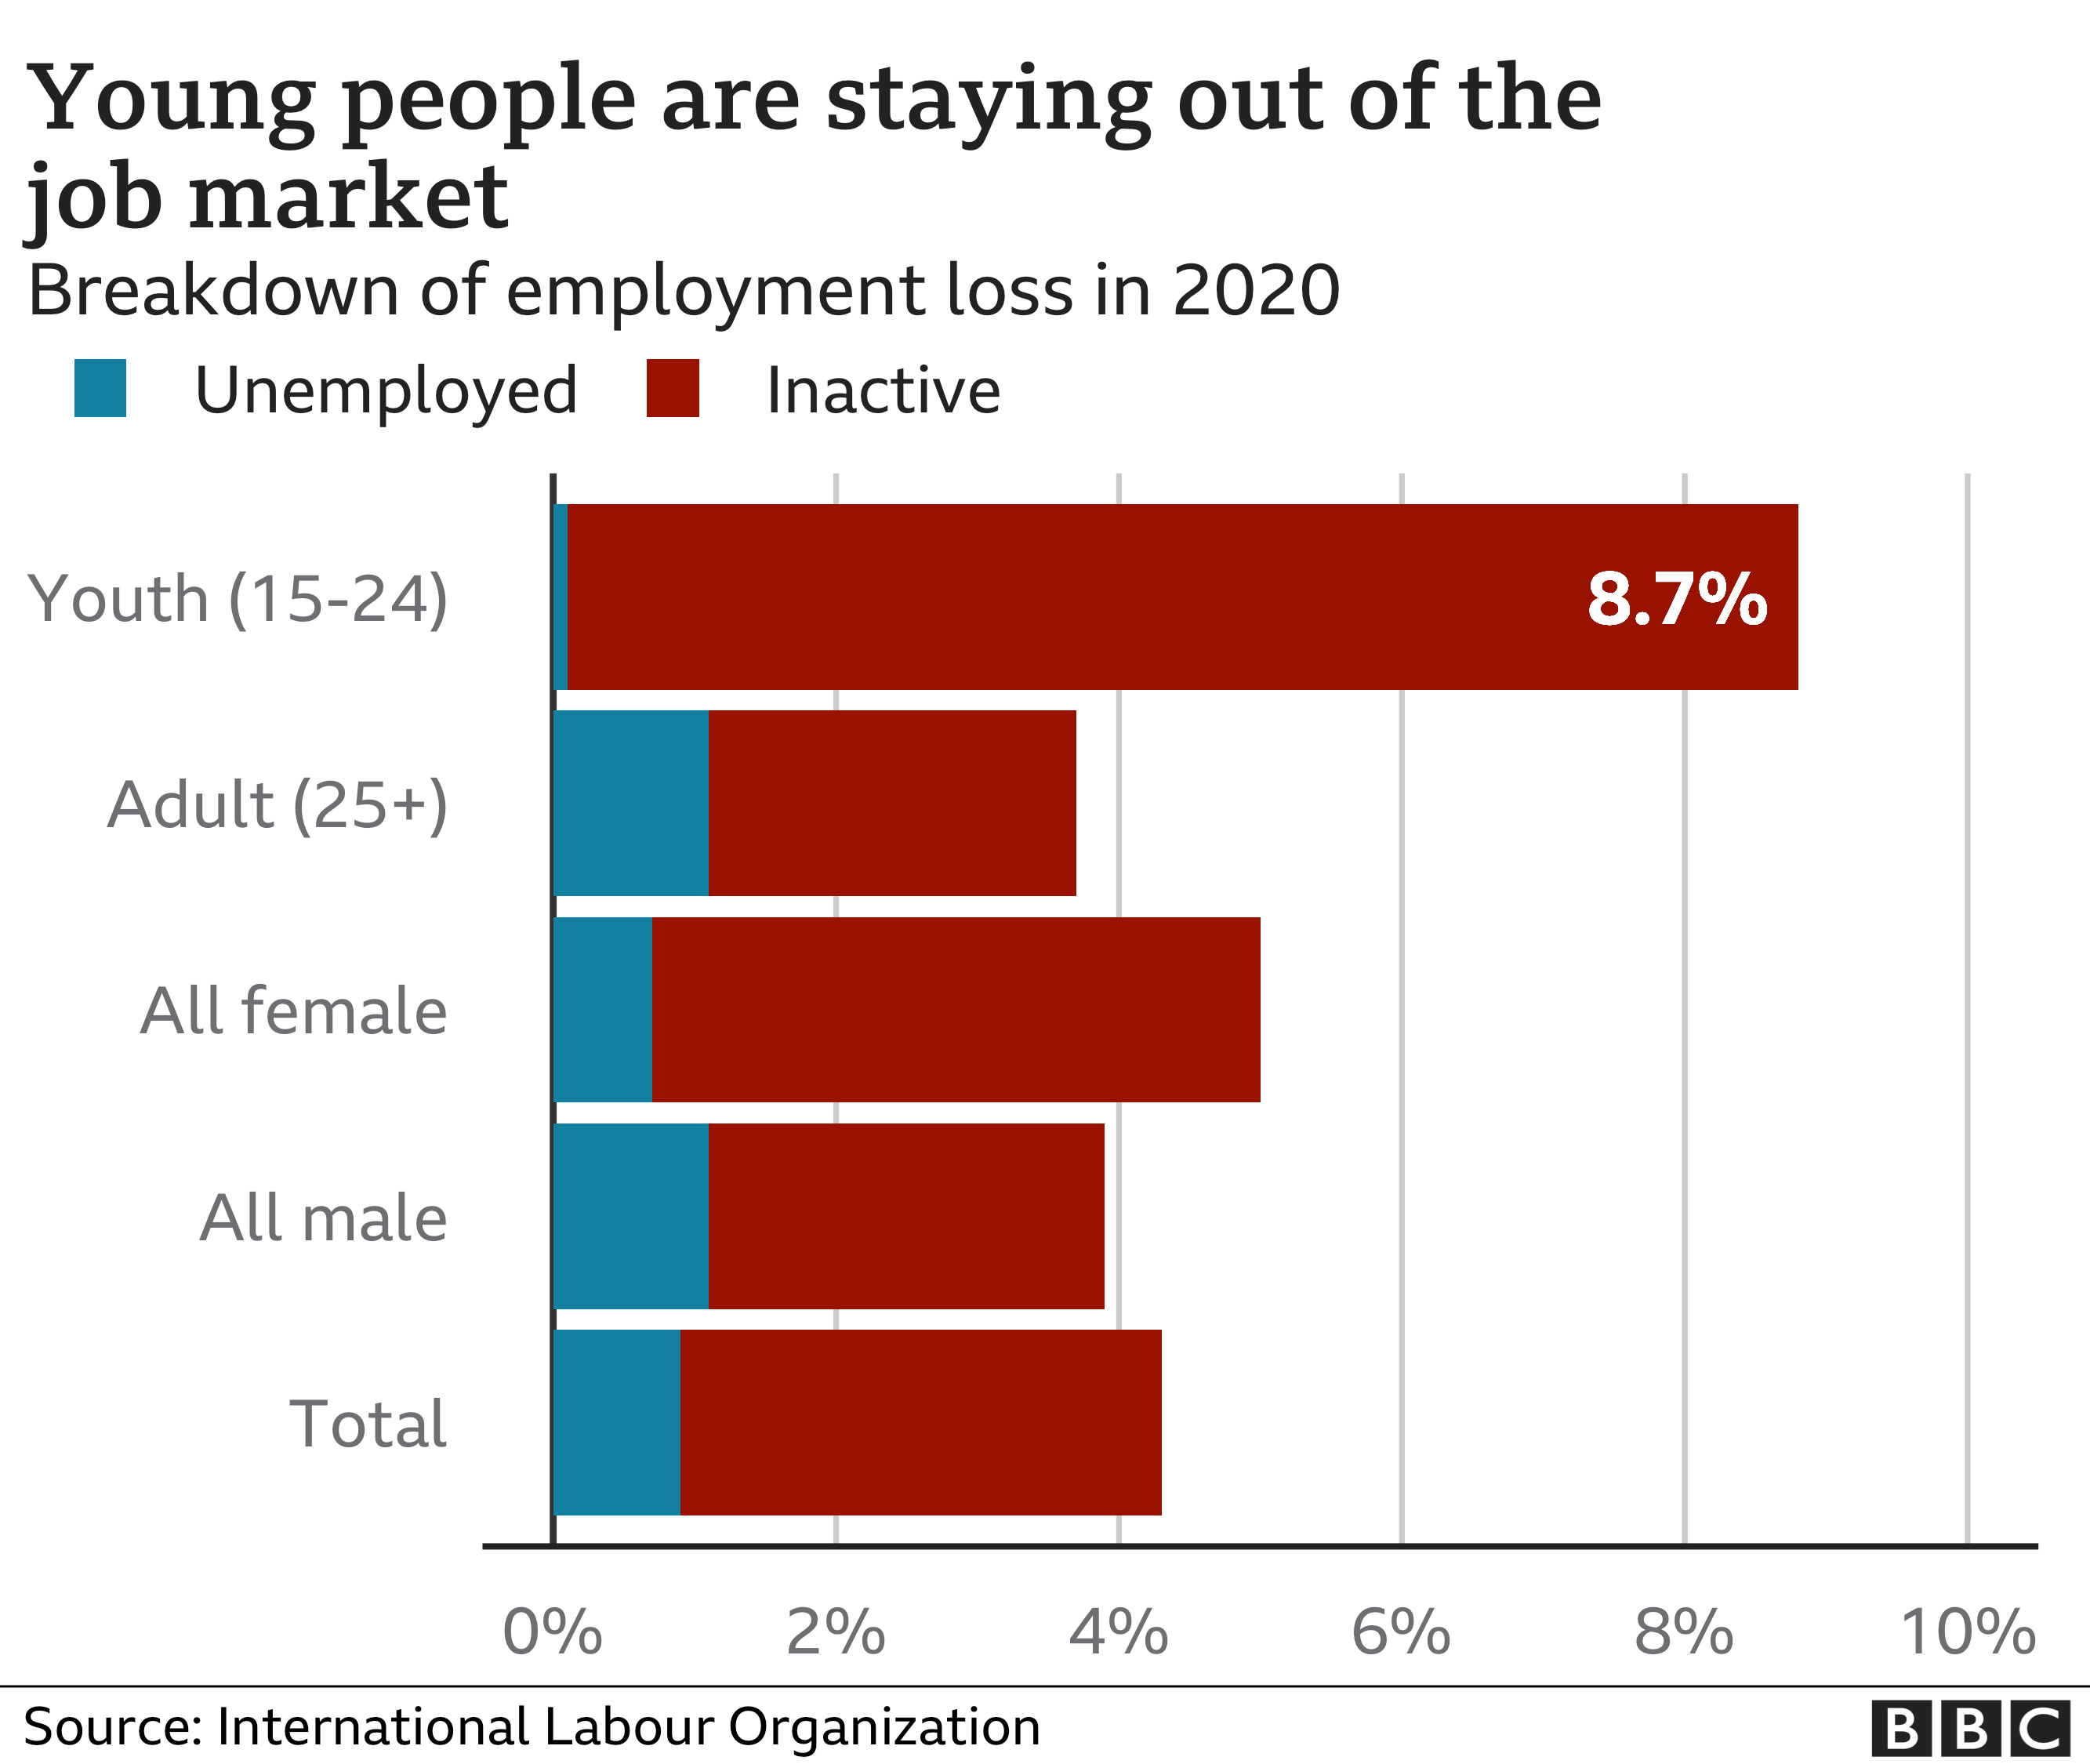 Chart showing young people staying out of the job market